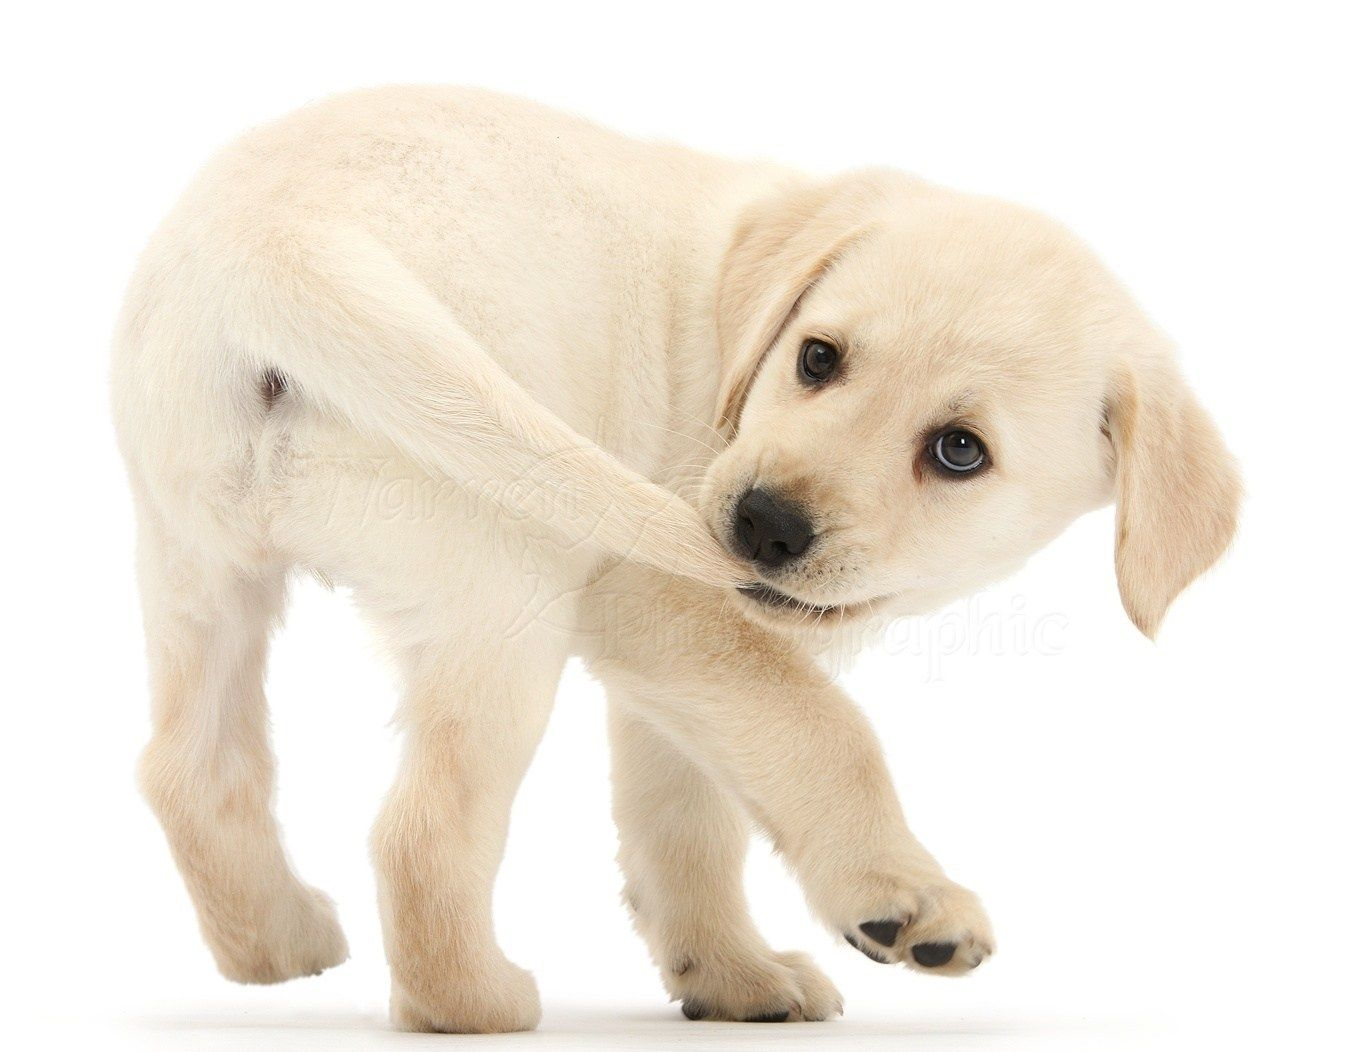 The Best Accessories For You And Your Dog Buyfordog Dog Doglove Dogphoto Cutedog Cuted Retriever Puppy Labrador Retriever Puppies Yellow Labrador Puppy